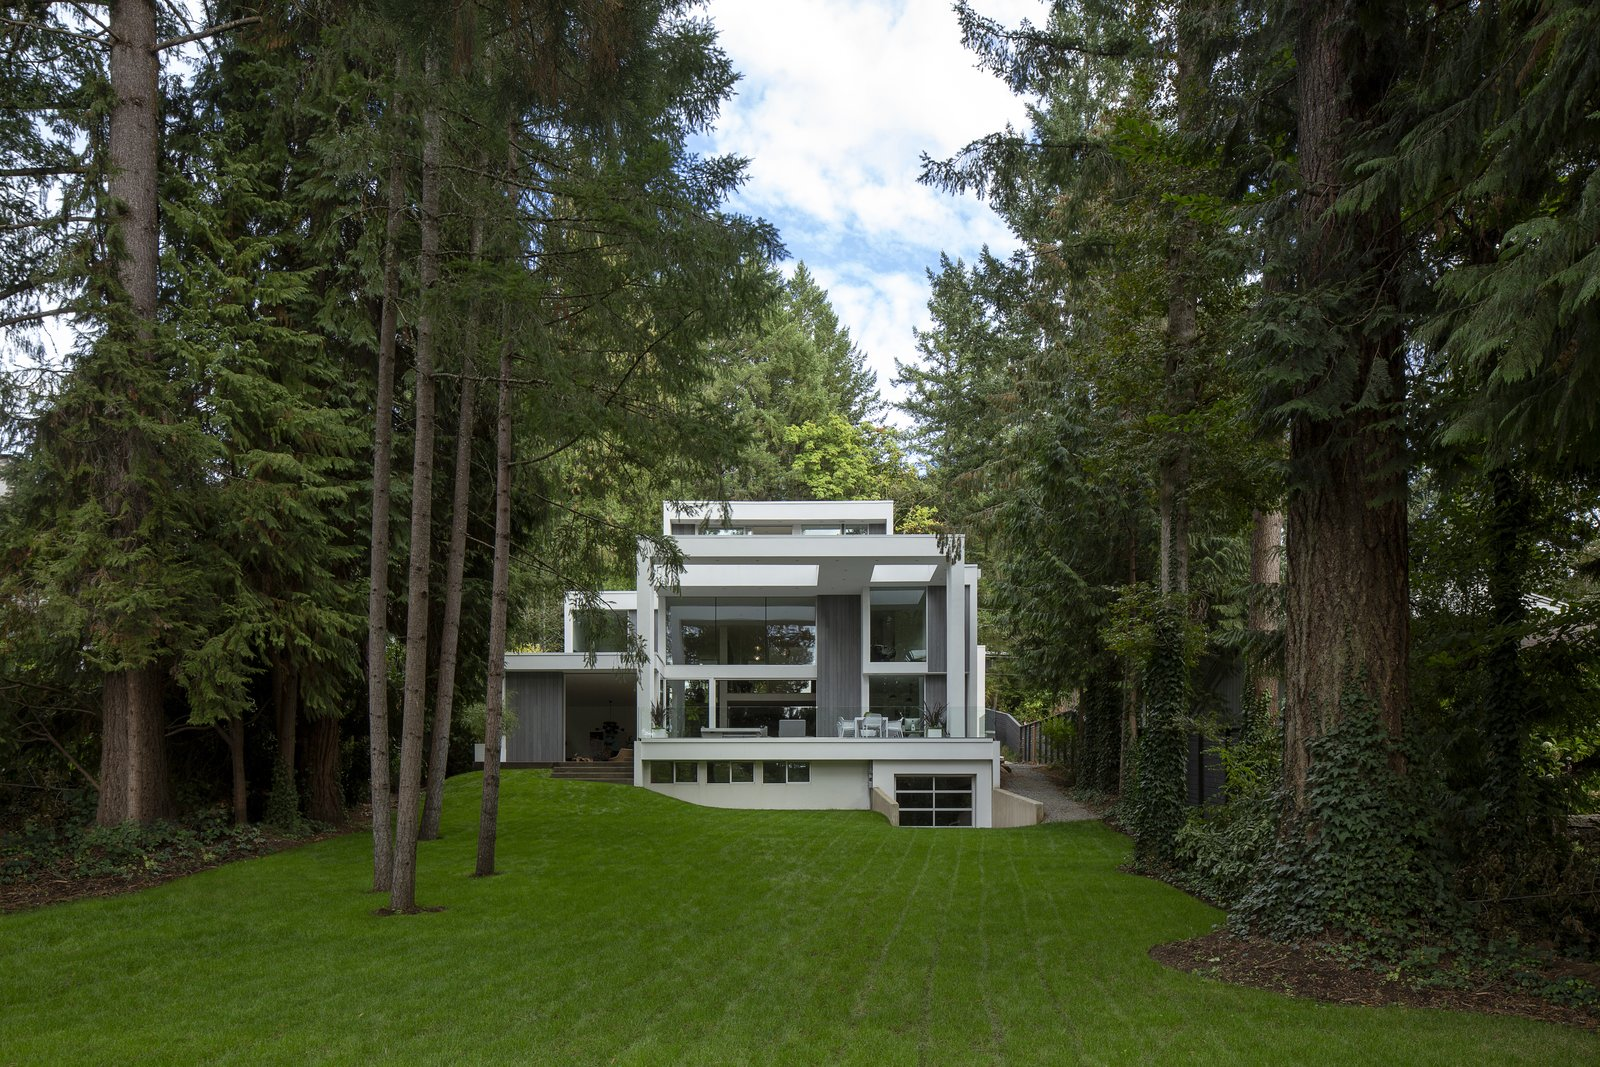 Photo 1 of 7 in An Actor-Turned-Designer Couple Build a Dream Home in Oregon